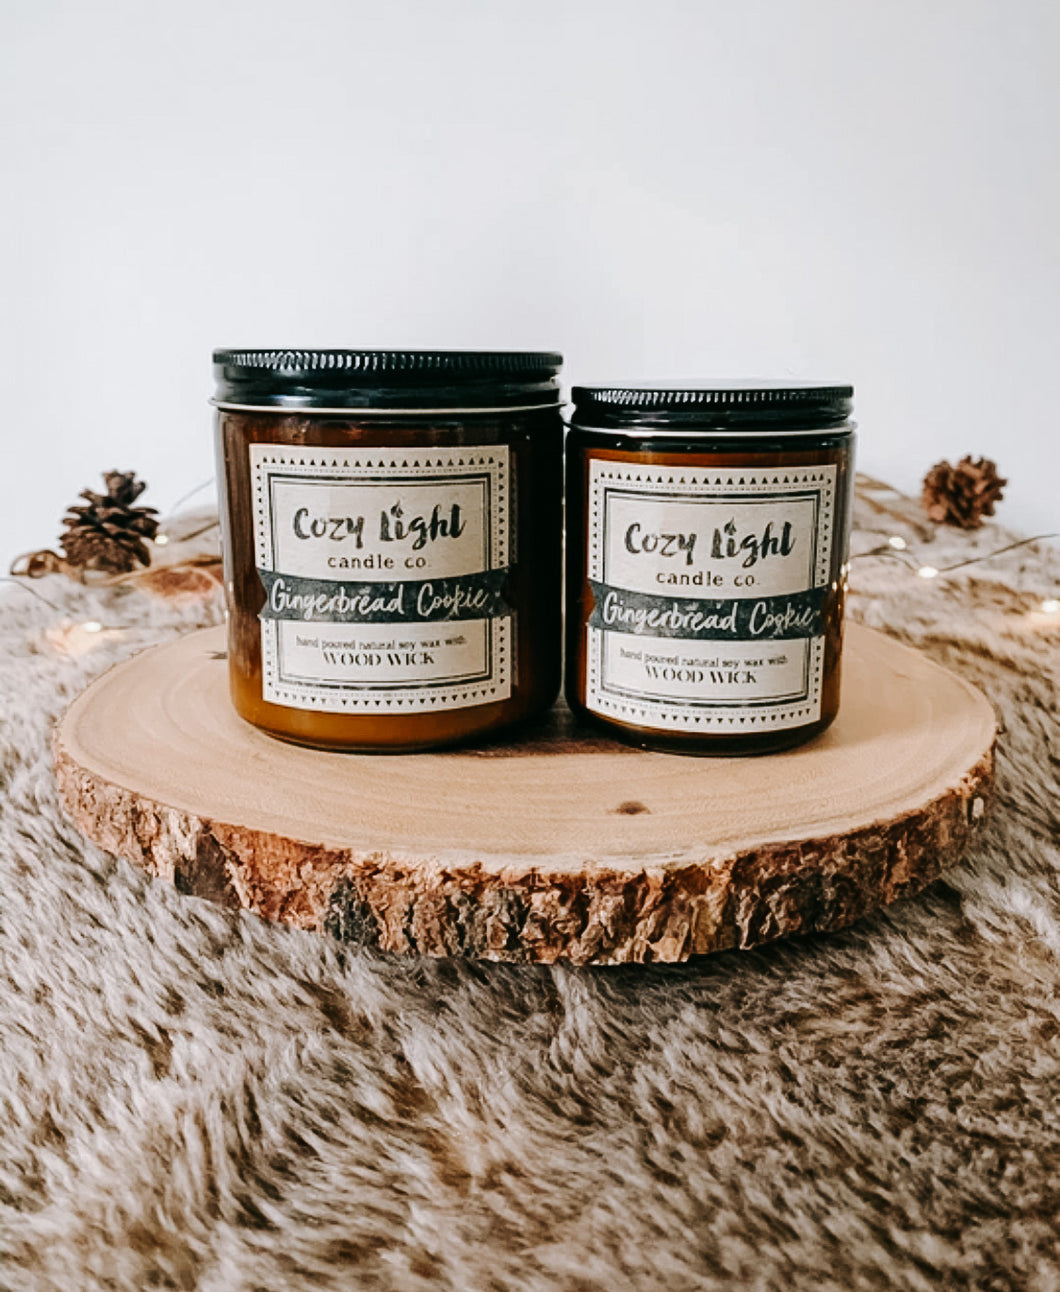 GINGERBREAD COOKIE Wood Wick Candle